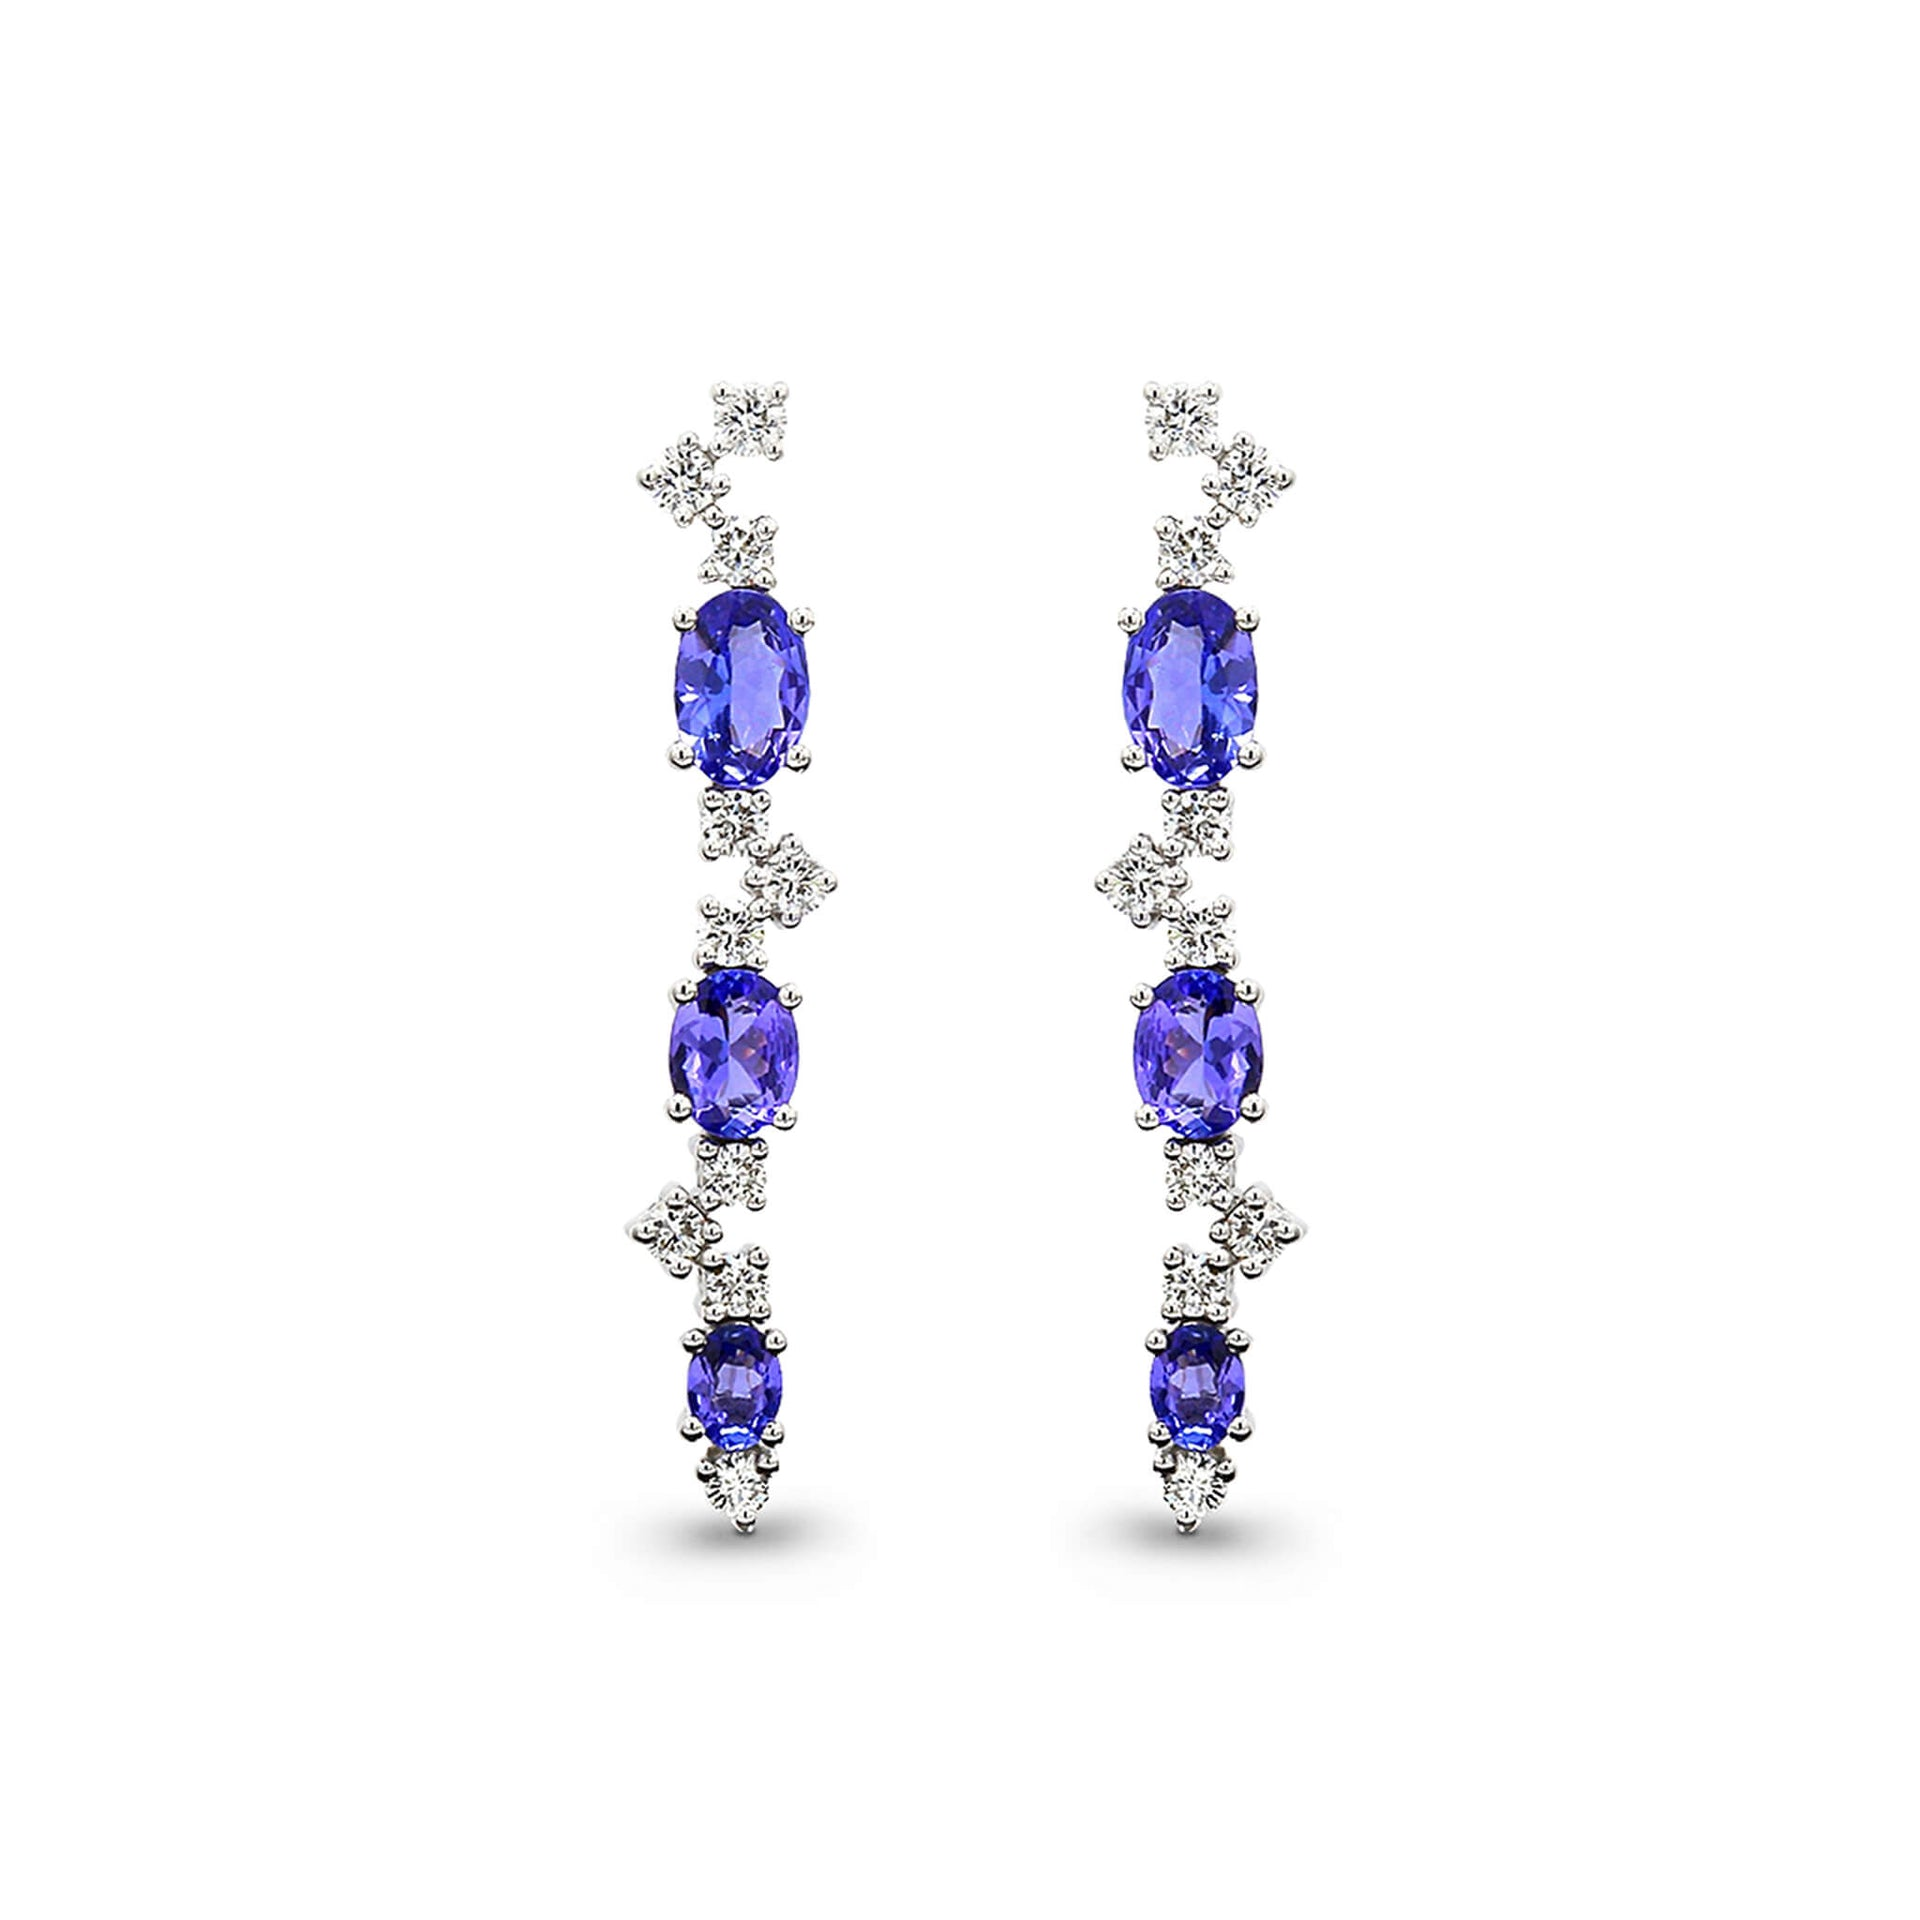 1.76 Carat Oval Cut Tanzanite & Round Brilliant Cut Diamond Drop Earrings in 18K White Gold Front View